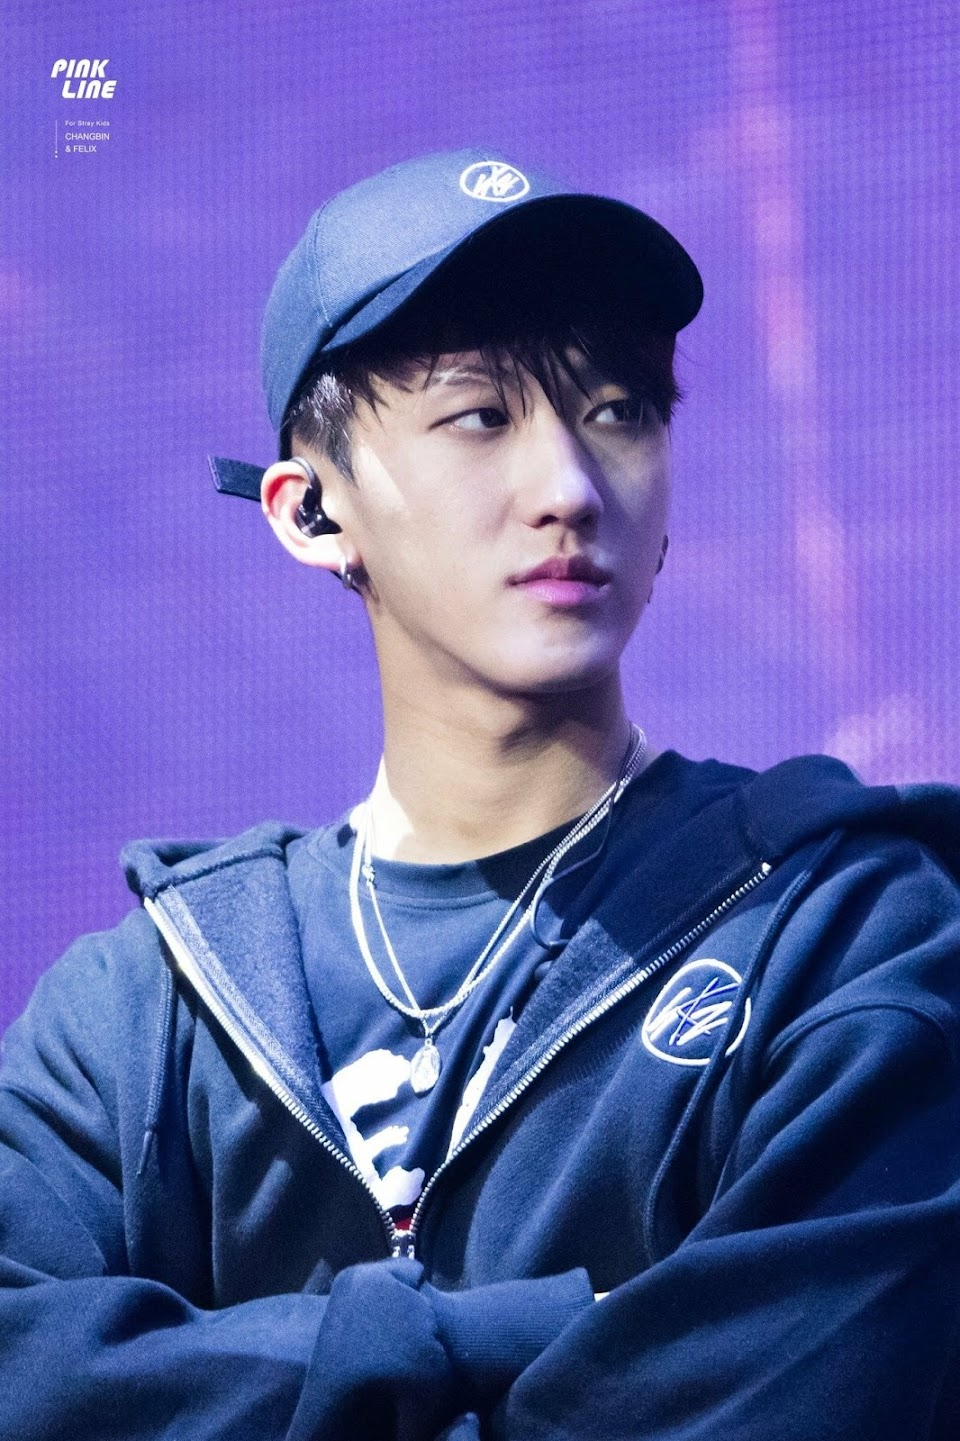 changbin slit 3